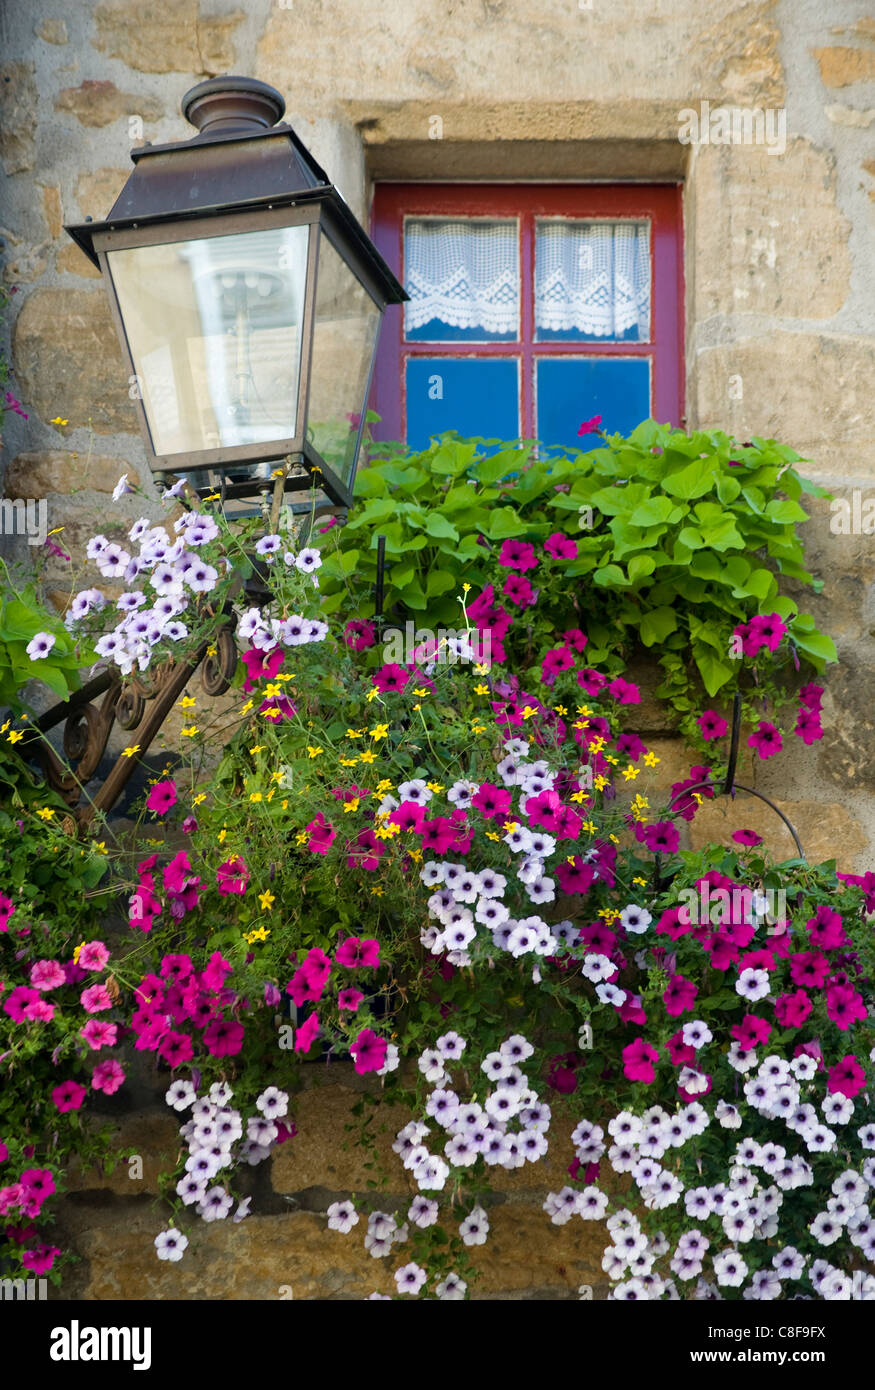 Purple petunias cascading from a window box in front of an old window in Sarlat, Dordogne, France - Stock Image